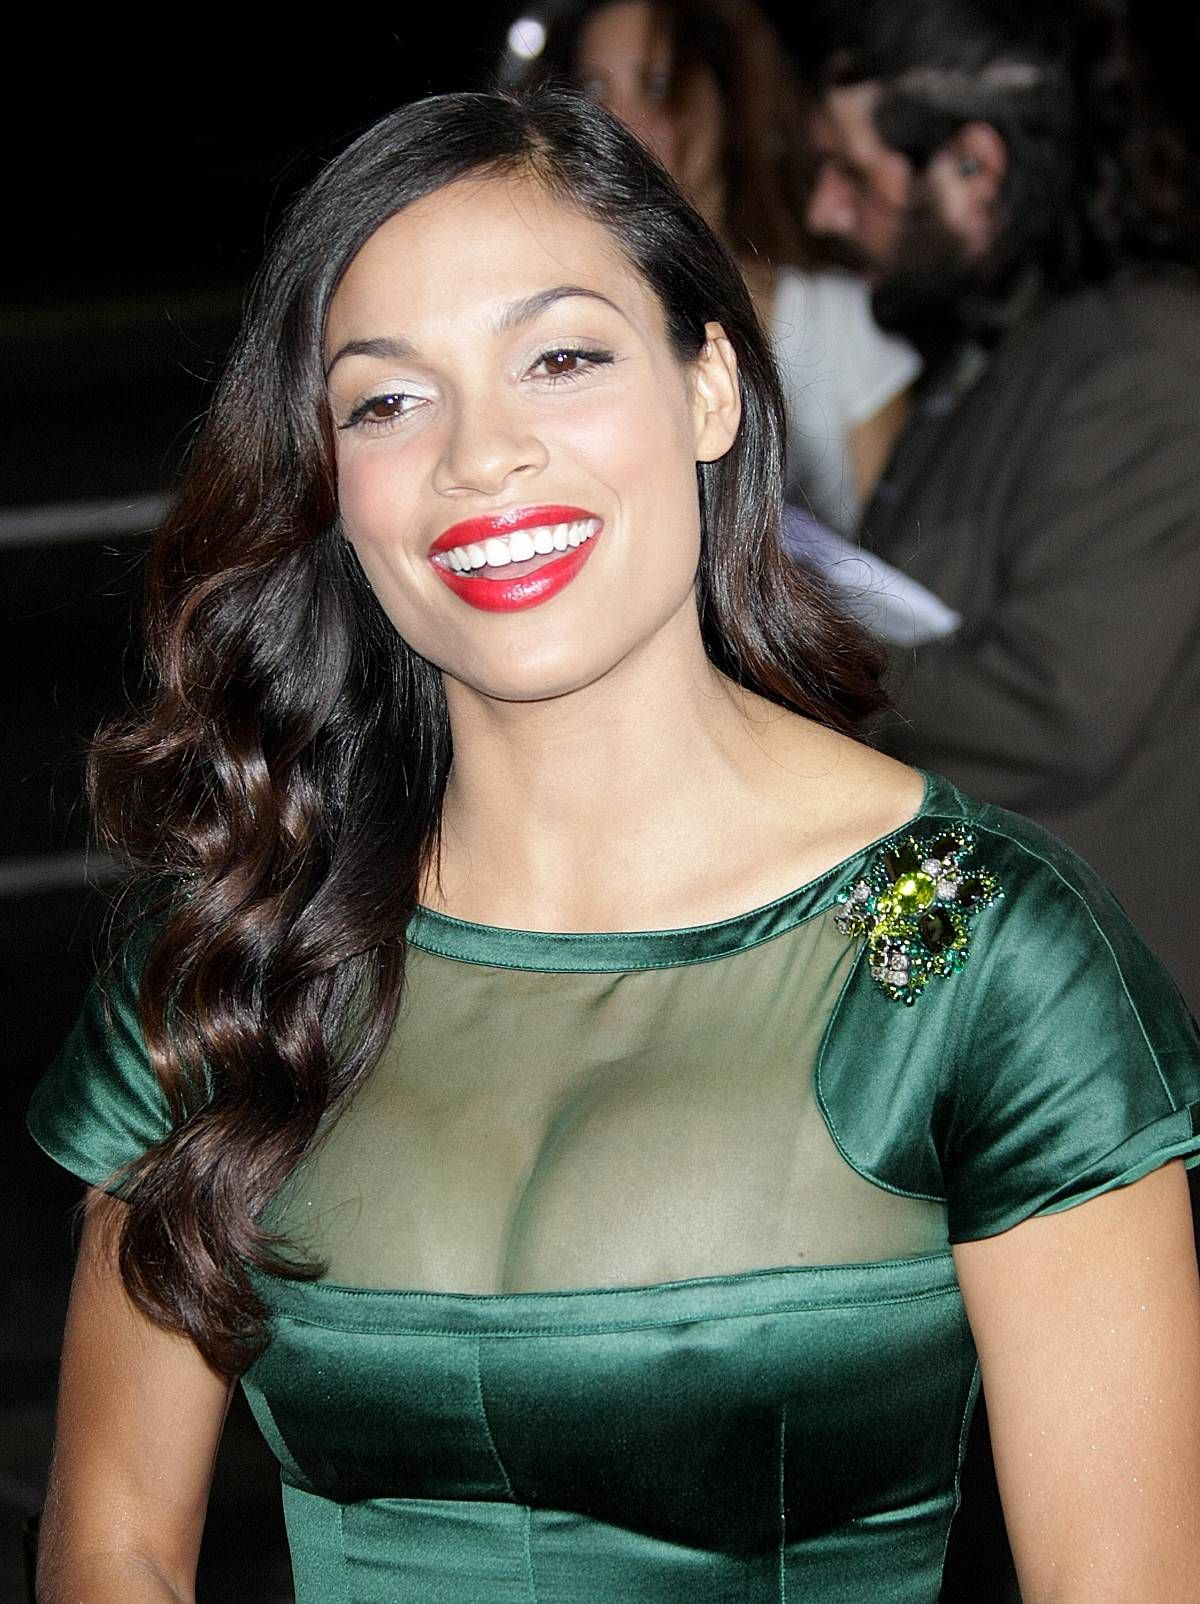 Rosario Dawson nudes (39 foto), Is a cute Fappening, YouTube, swimsuit 2018